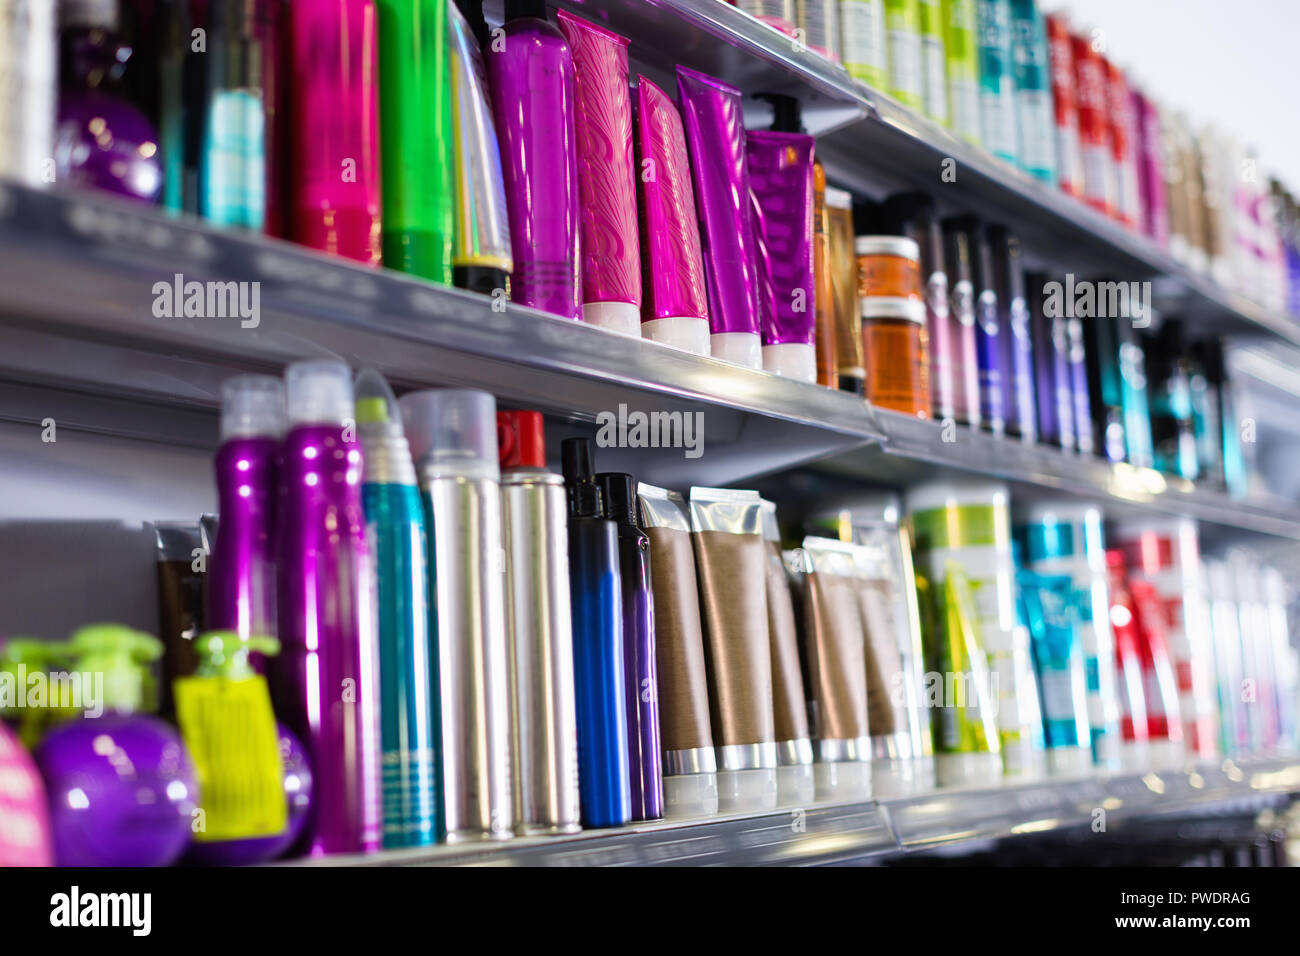 Shelves With Fashionable Hair Care Products In A Cosmetics